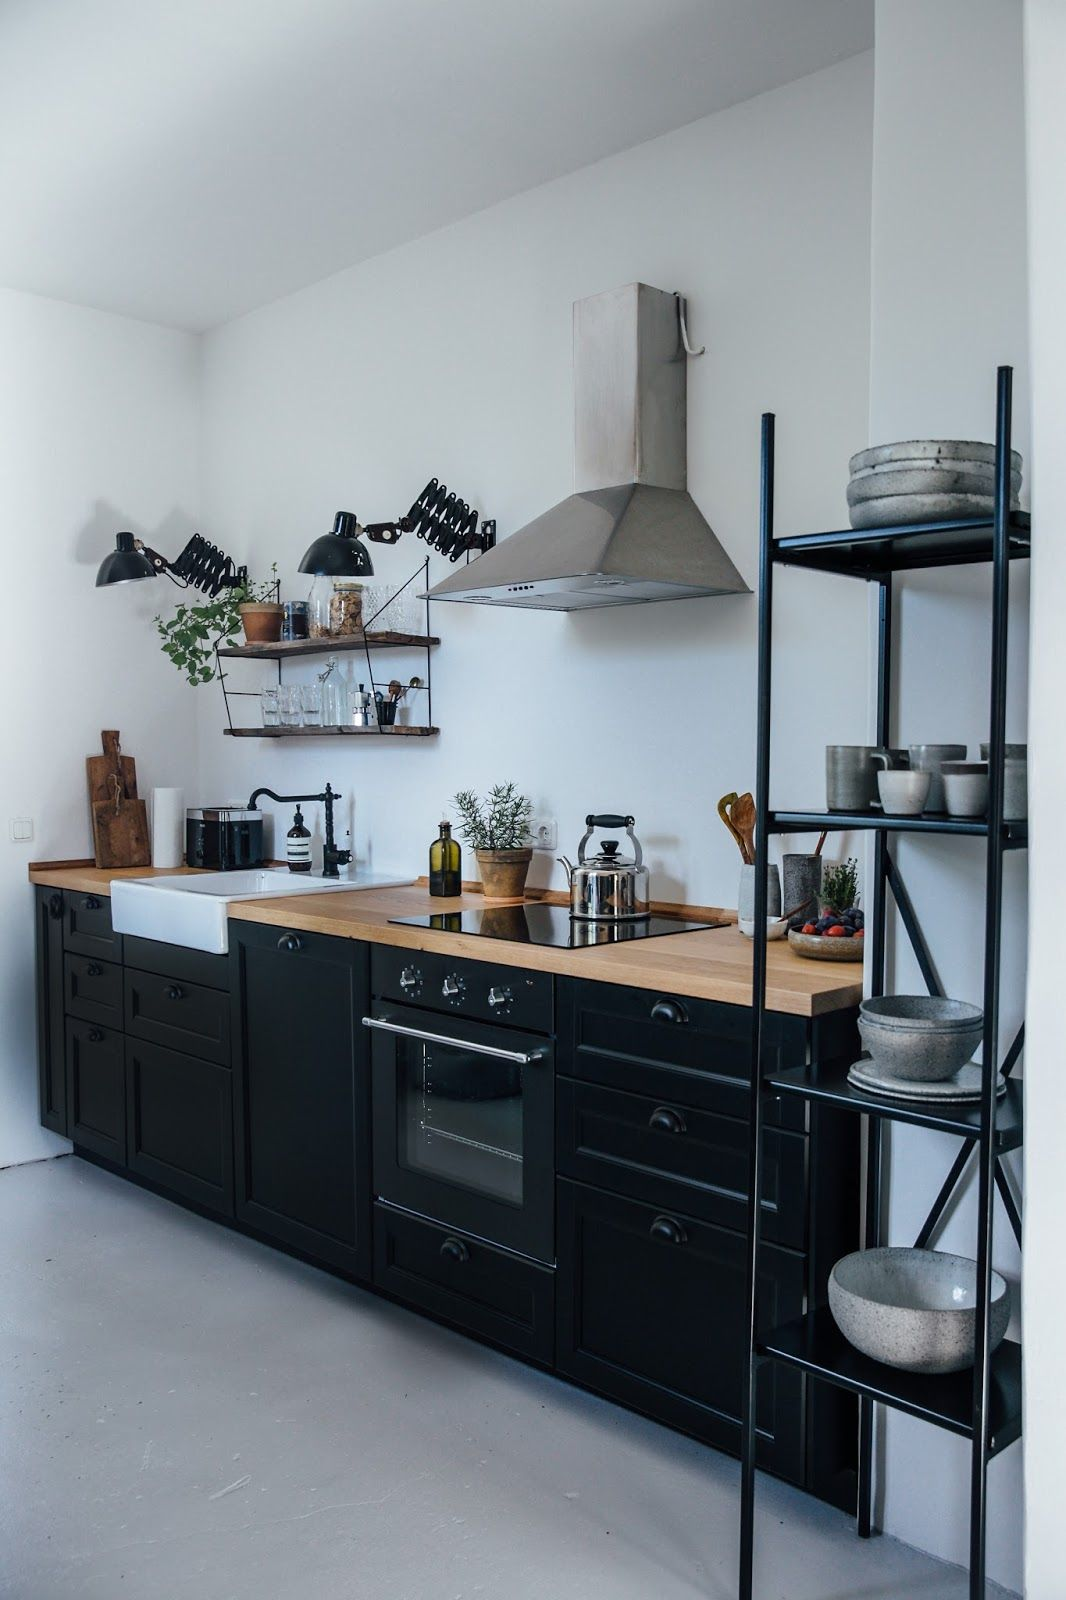 Ikea Küche Dachgeschoss Kitchen Of The Week A Diy Ikea Country Kitchen For Two Berlin